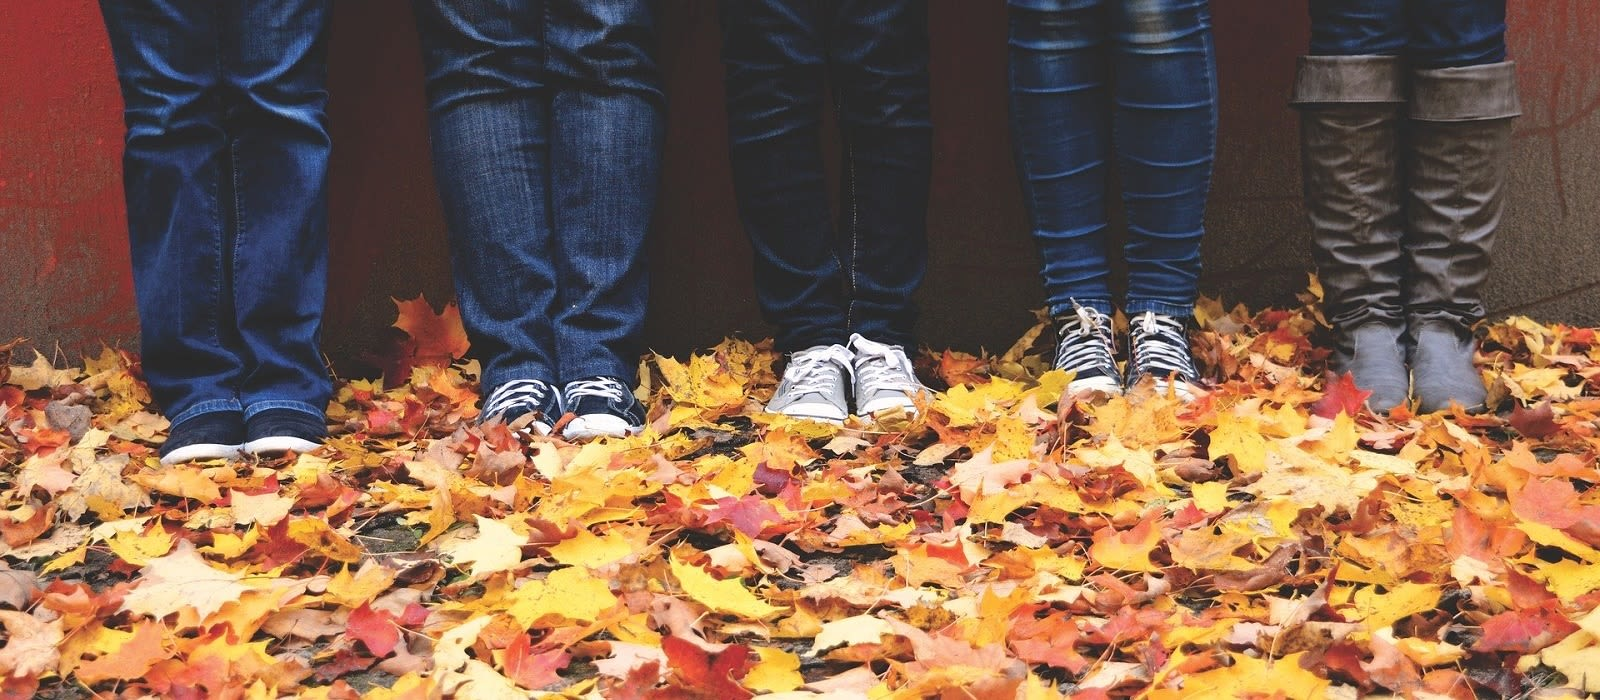 A photo of four peoples legs as they are standing in a pile of autumn leaves.